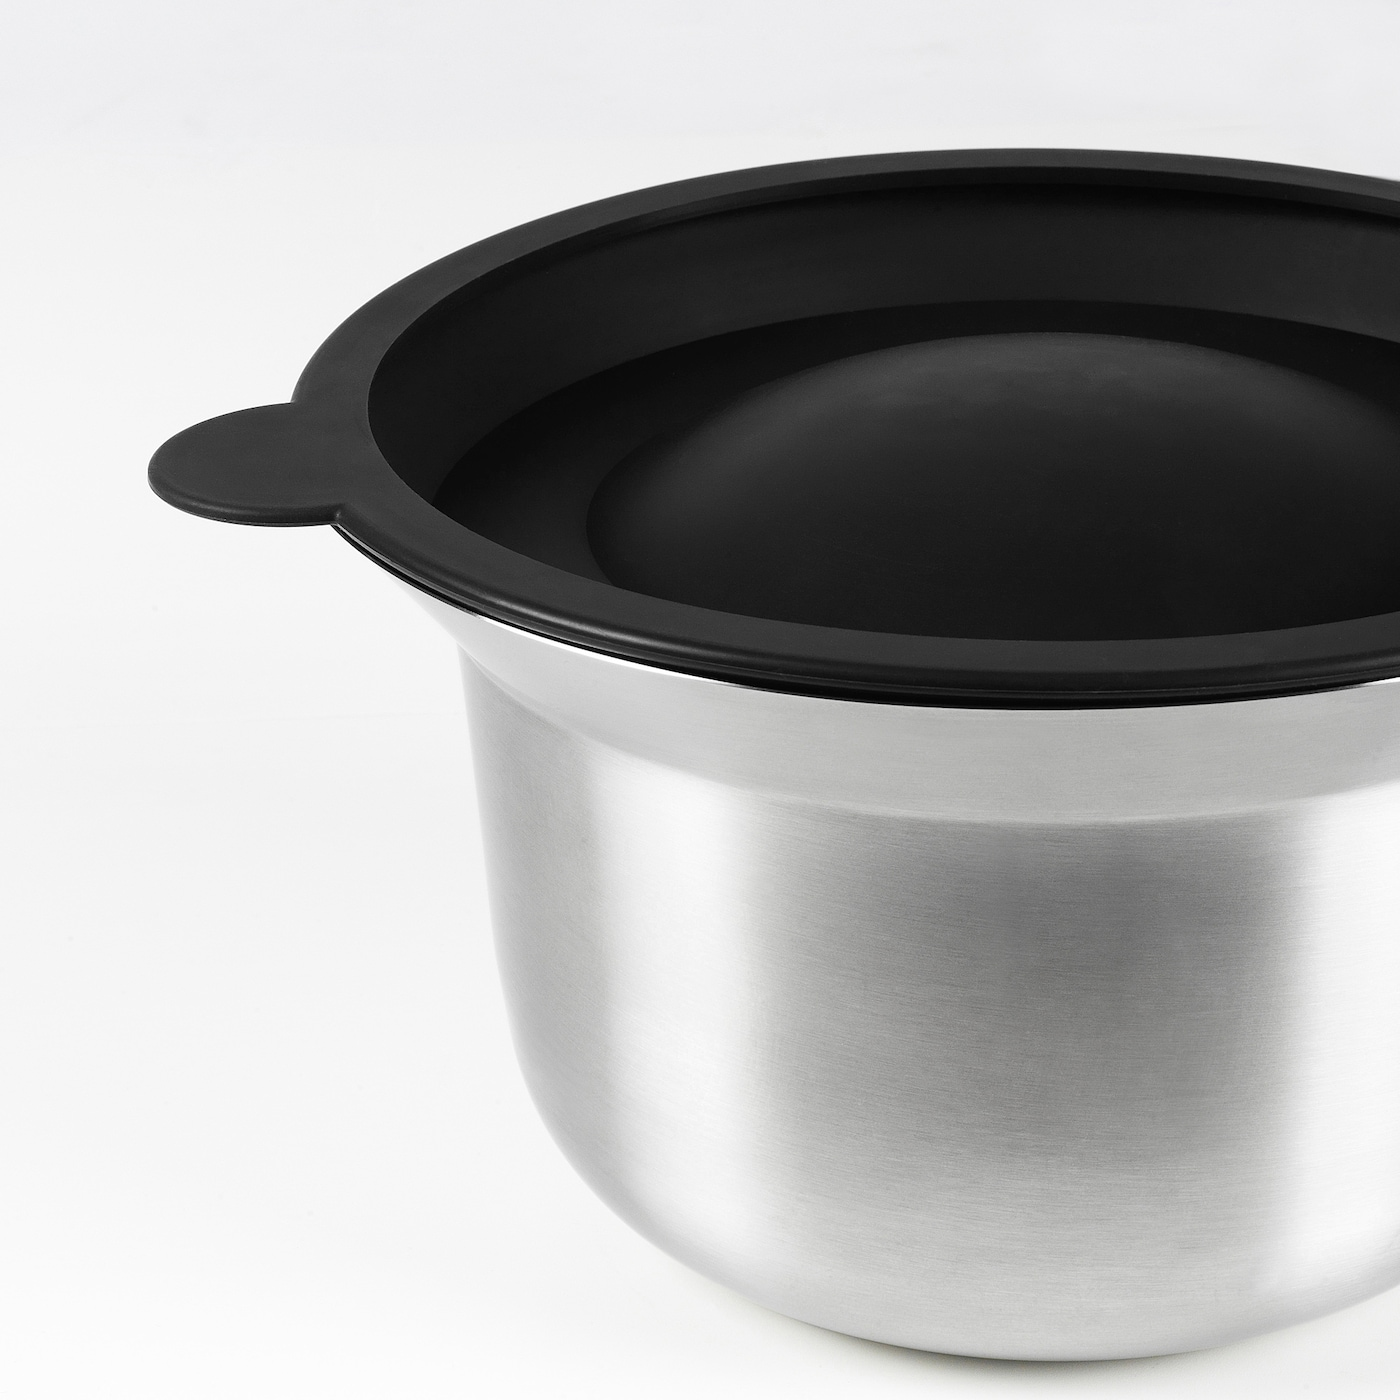 OMTÄNKSAM Mixing bowl with lid, stainless steel/light grey, 2.5 l